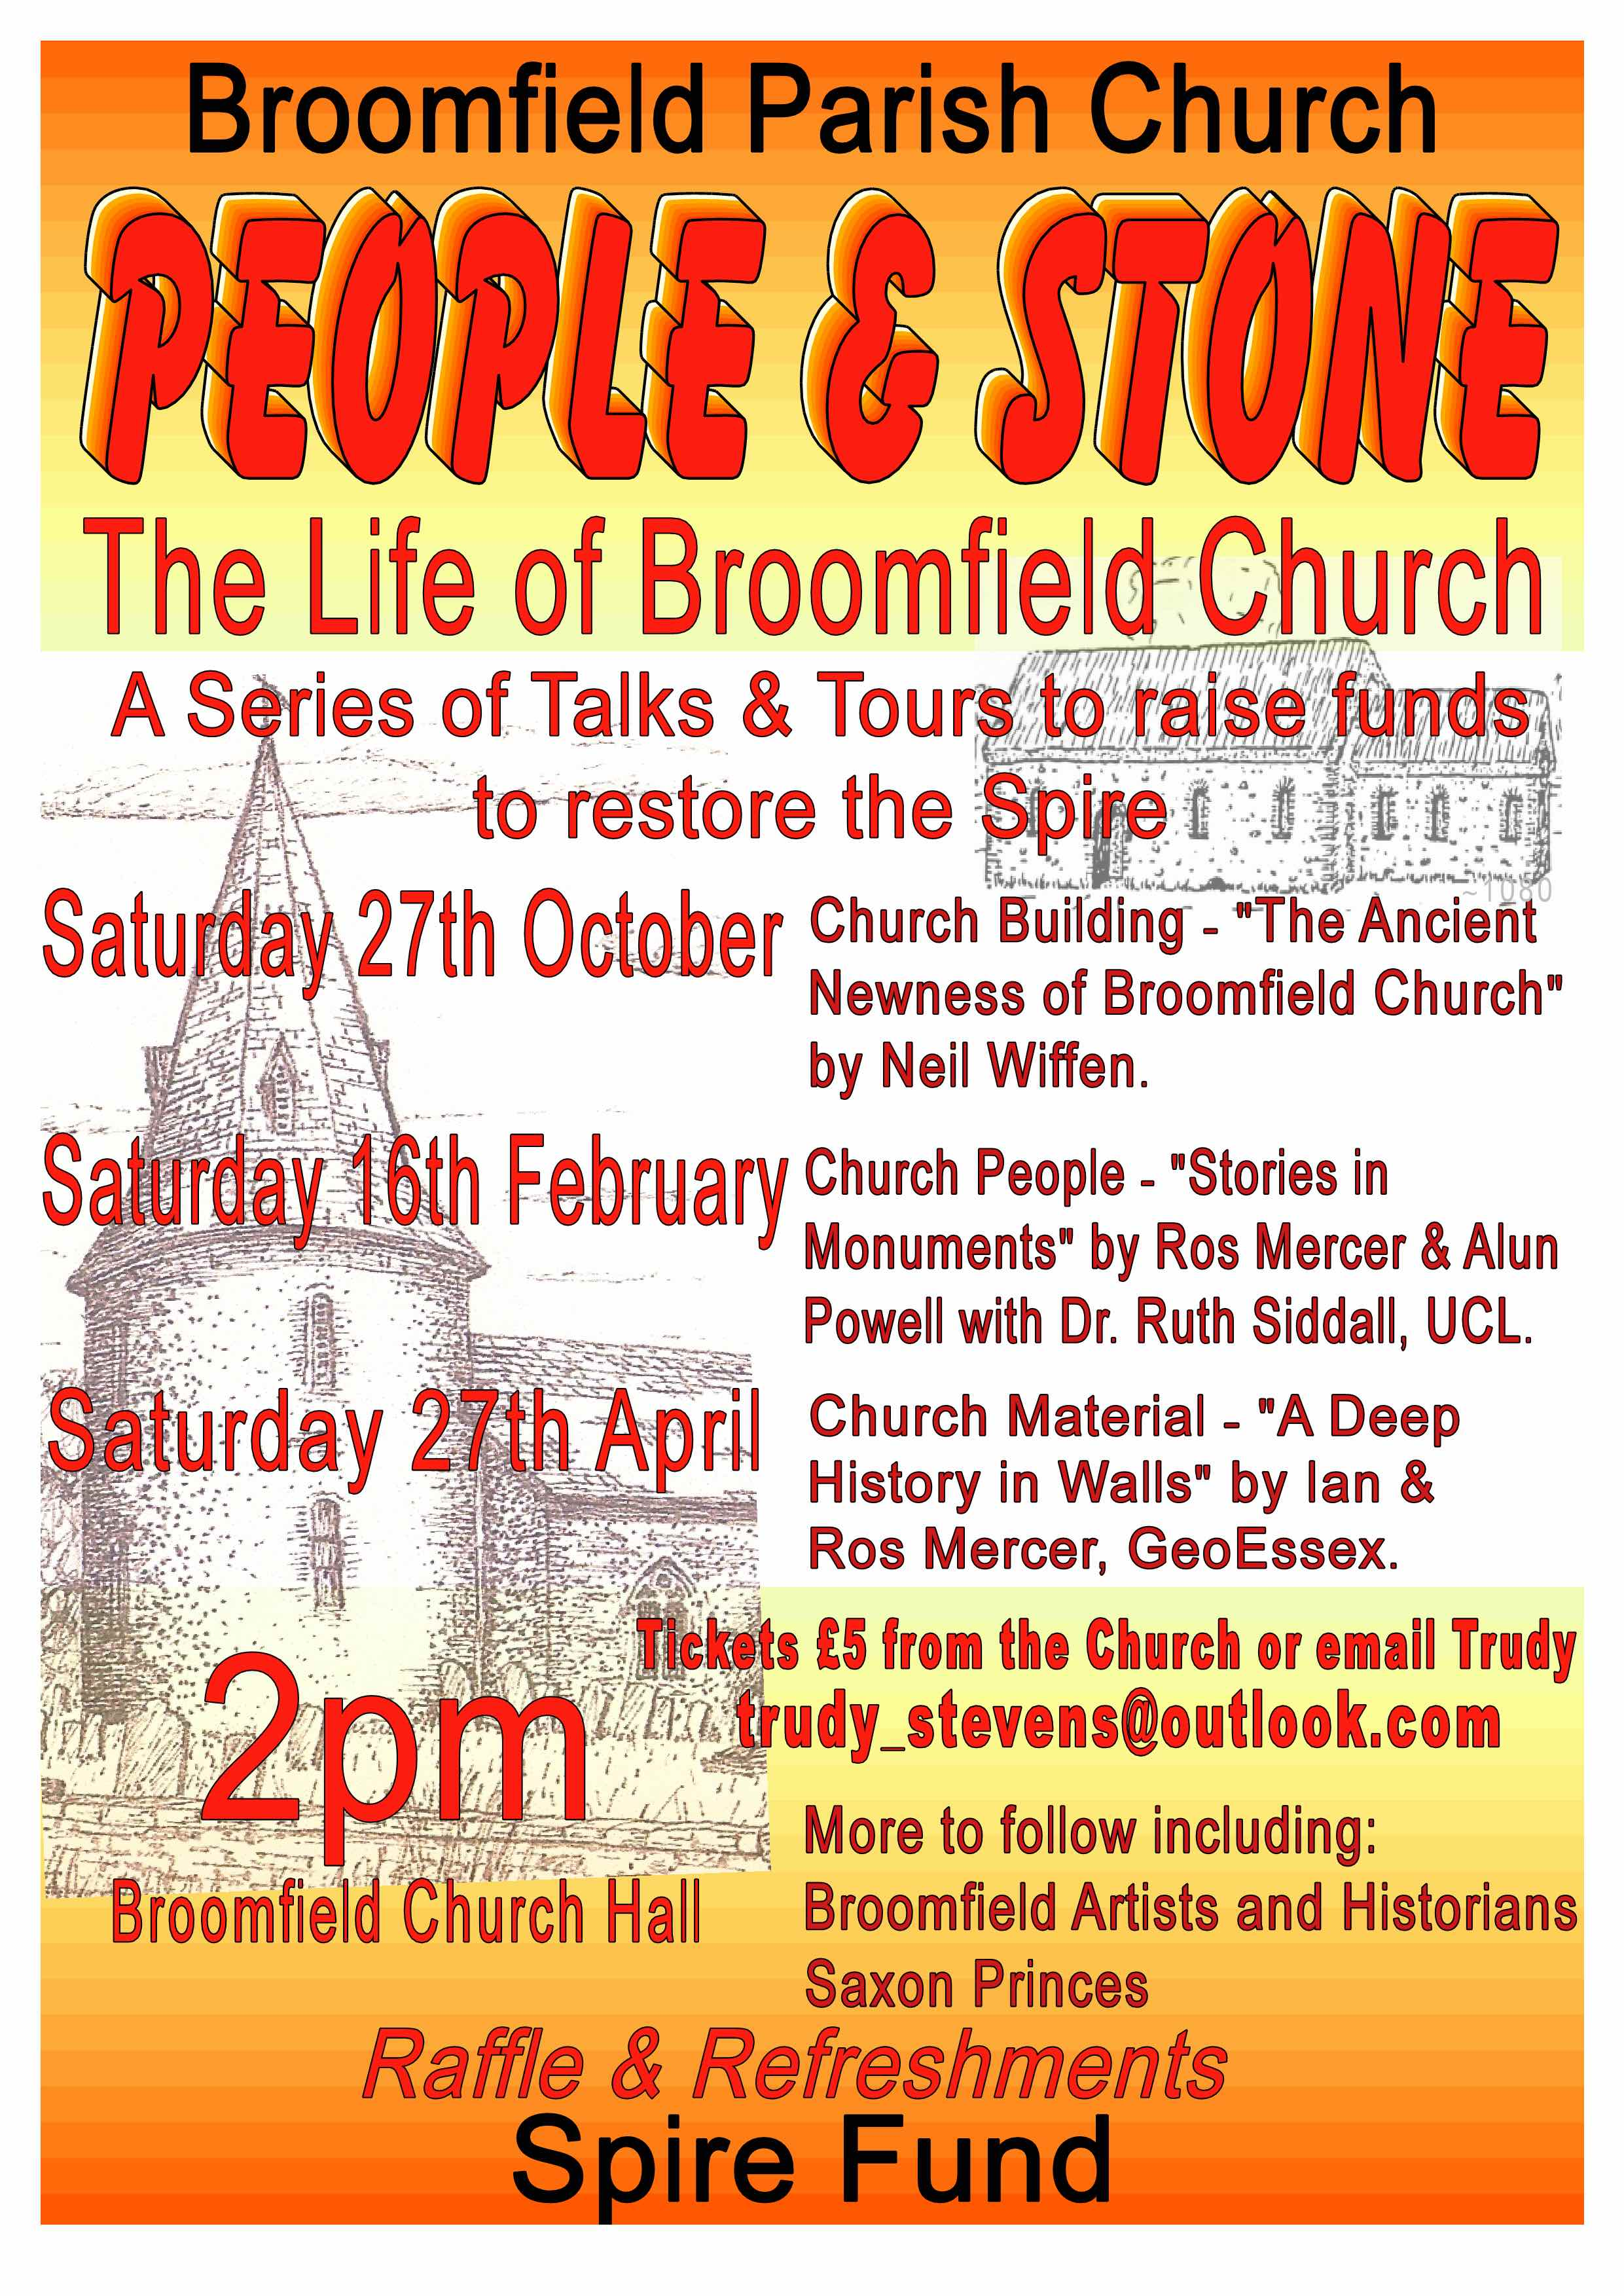 People & Stone Talk - 'Stories of the Monuments'